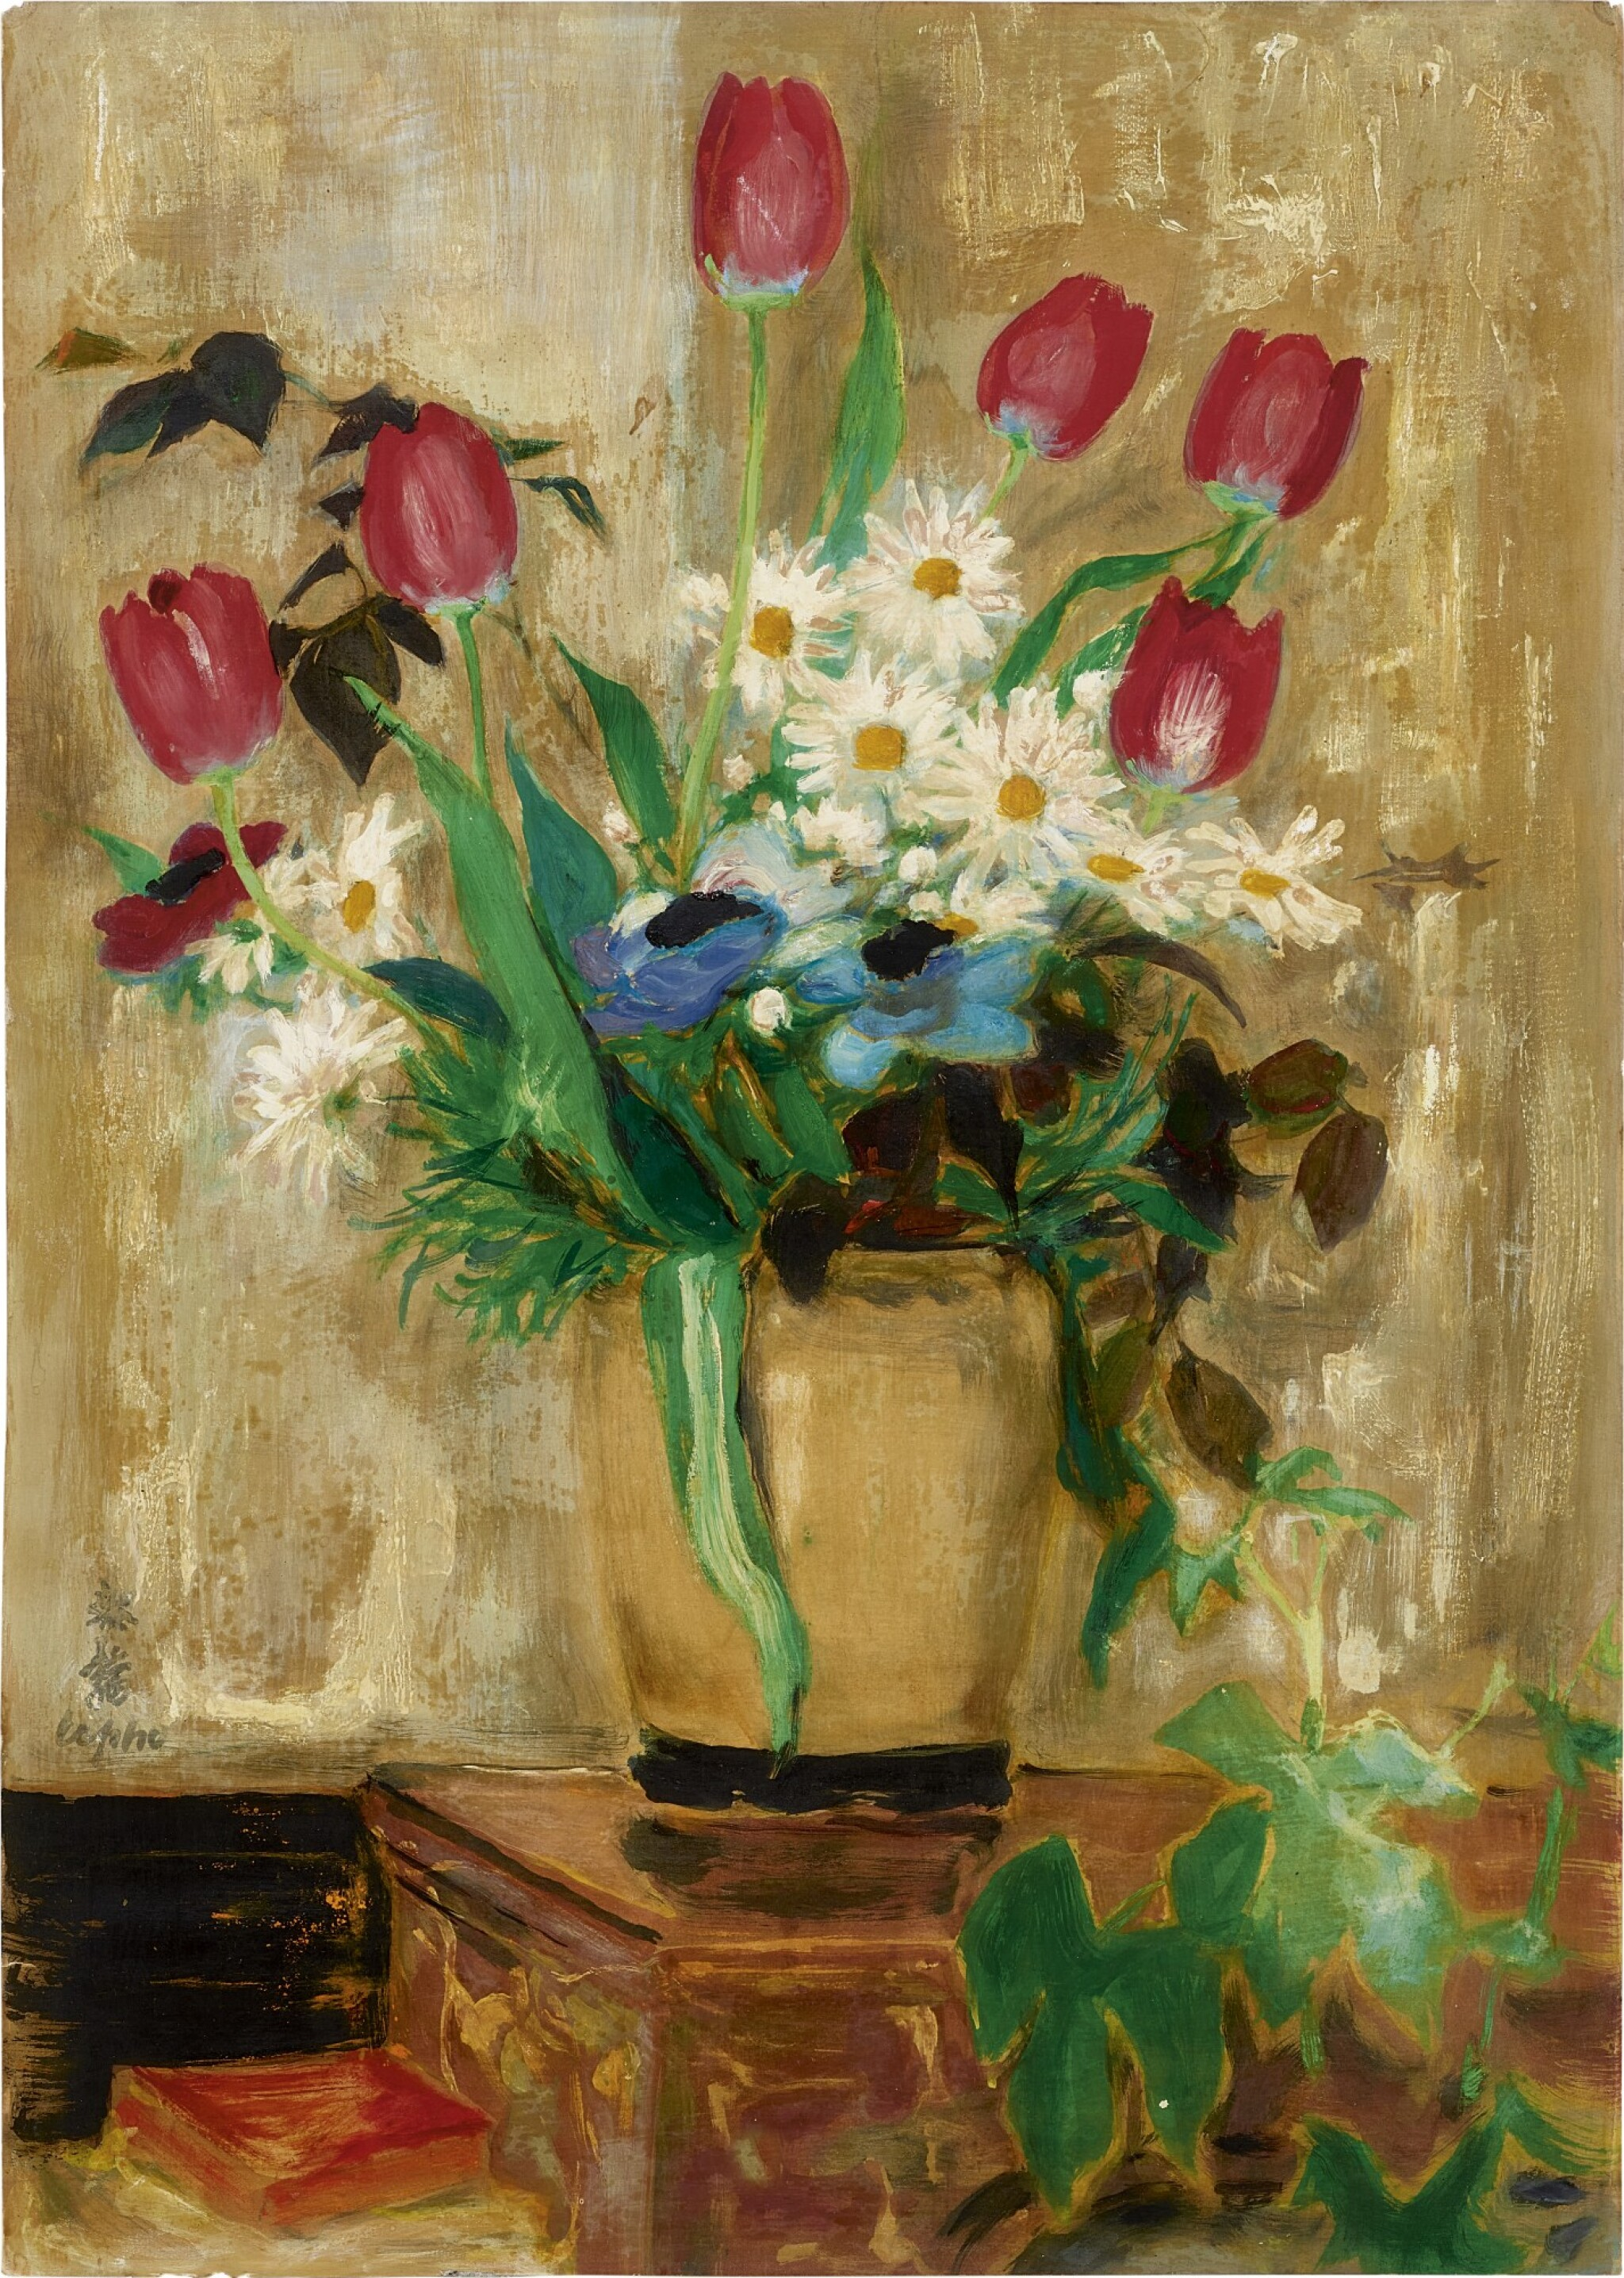 View full screen - View 1 of Lot 256. LE PHO 黎譜 | LE TULIPES ROUGES, VASE CRÈME (RED TULIPS IN A CREAM VASE) 奶白色花瓶裡的紅色鬱金香.